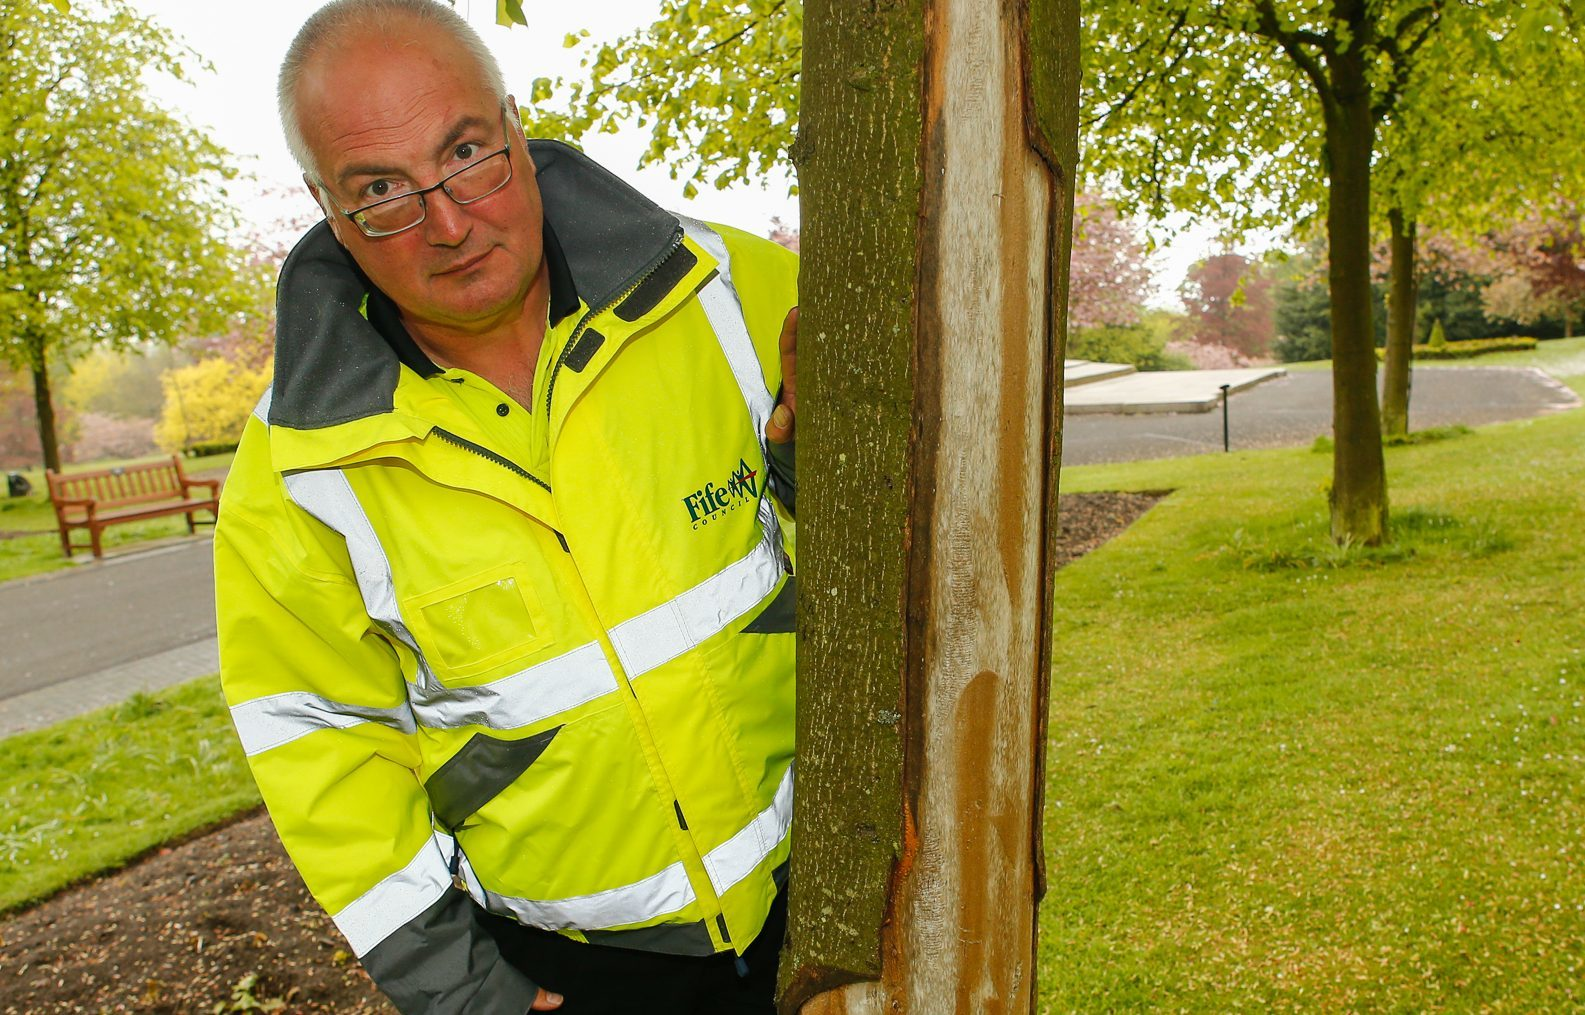 Nigel Stevens inspects the damage to the Lime trees in Pittencrieff Park